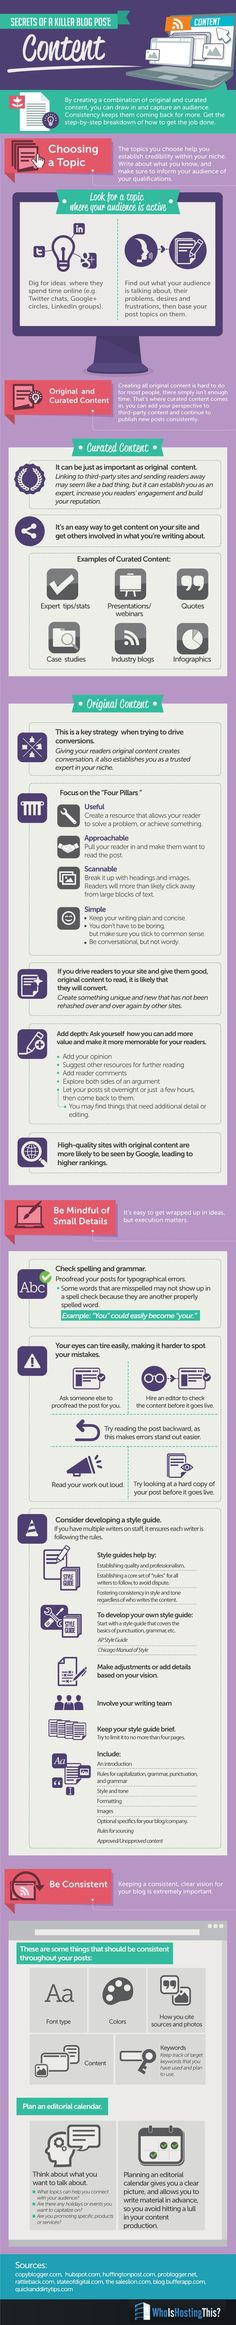 Secrets of a killer blog post: Content #infographic